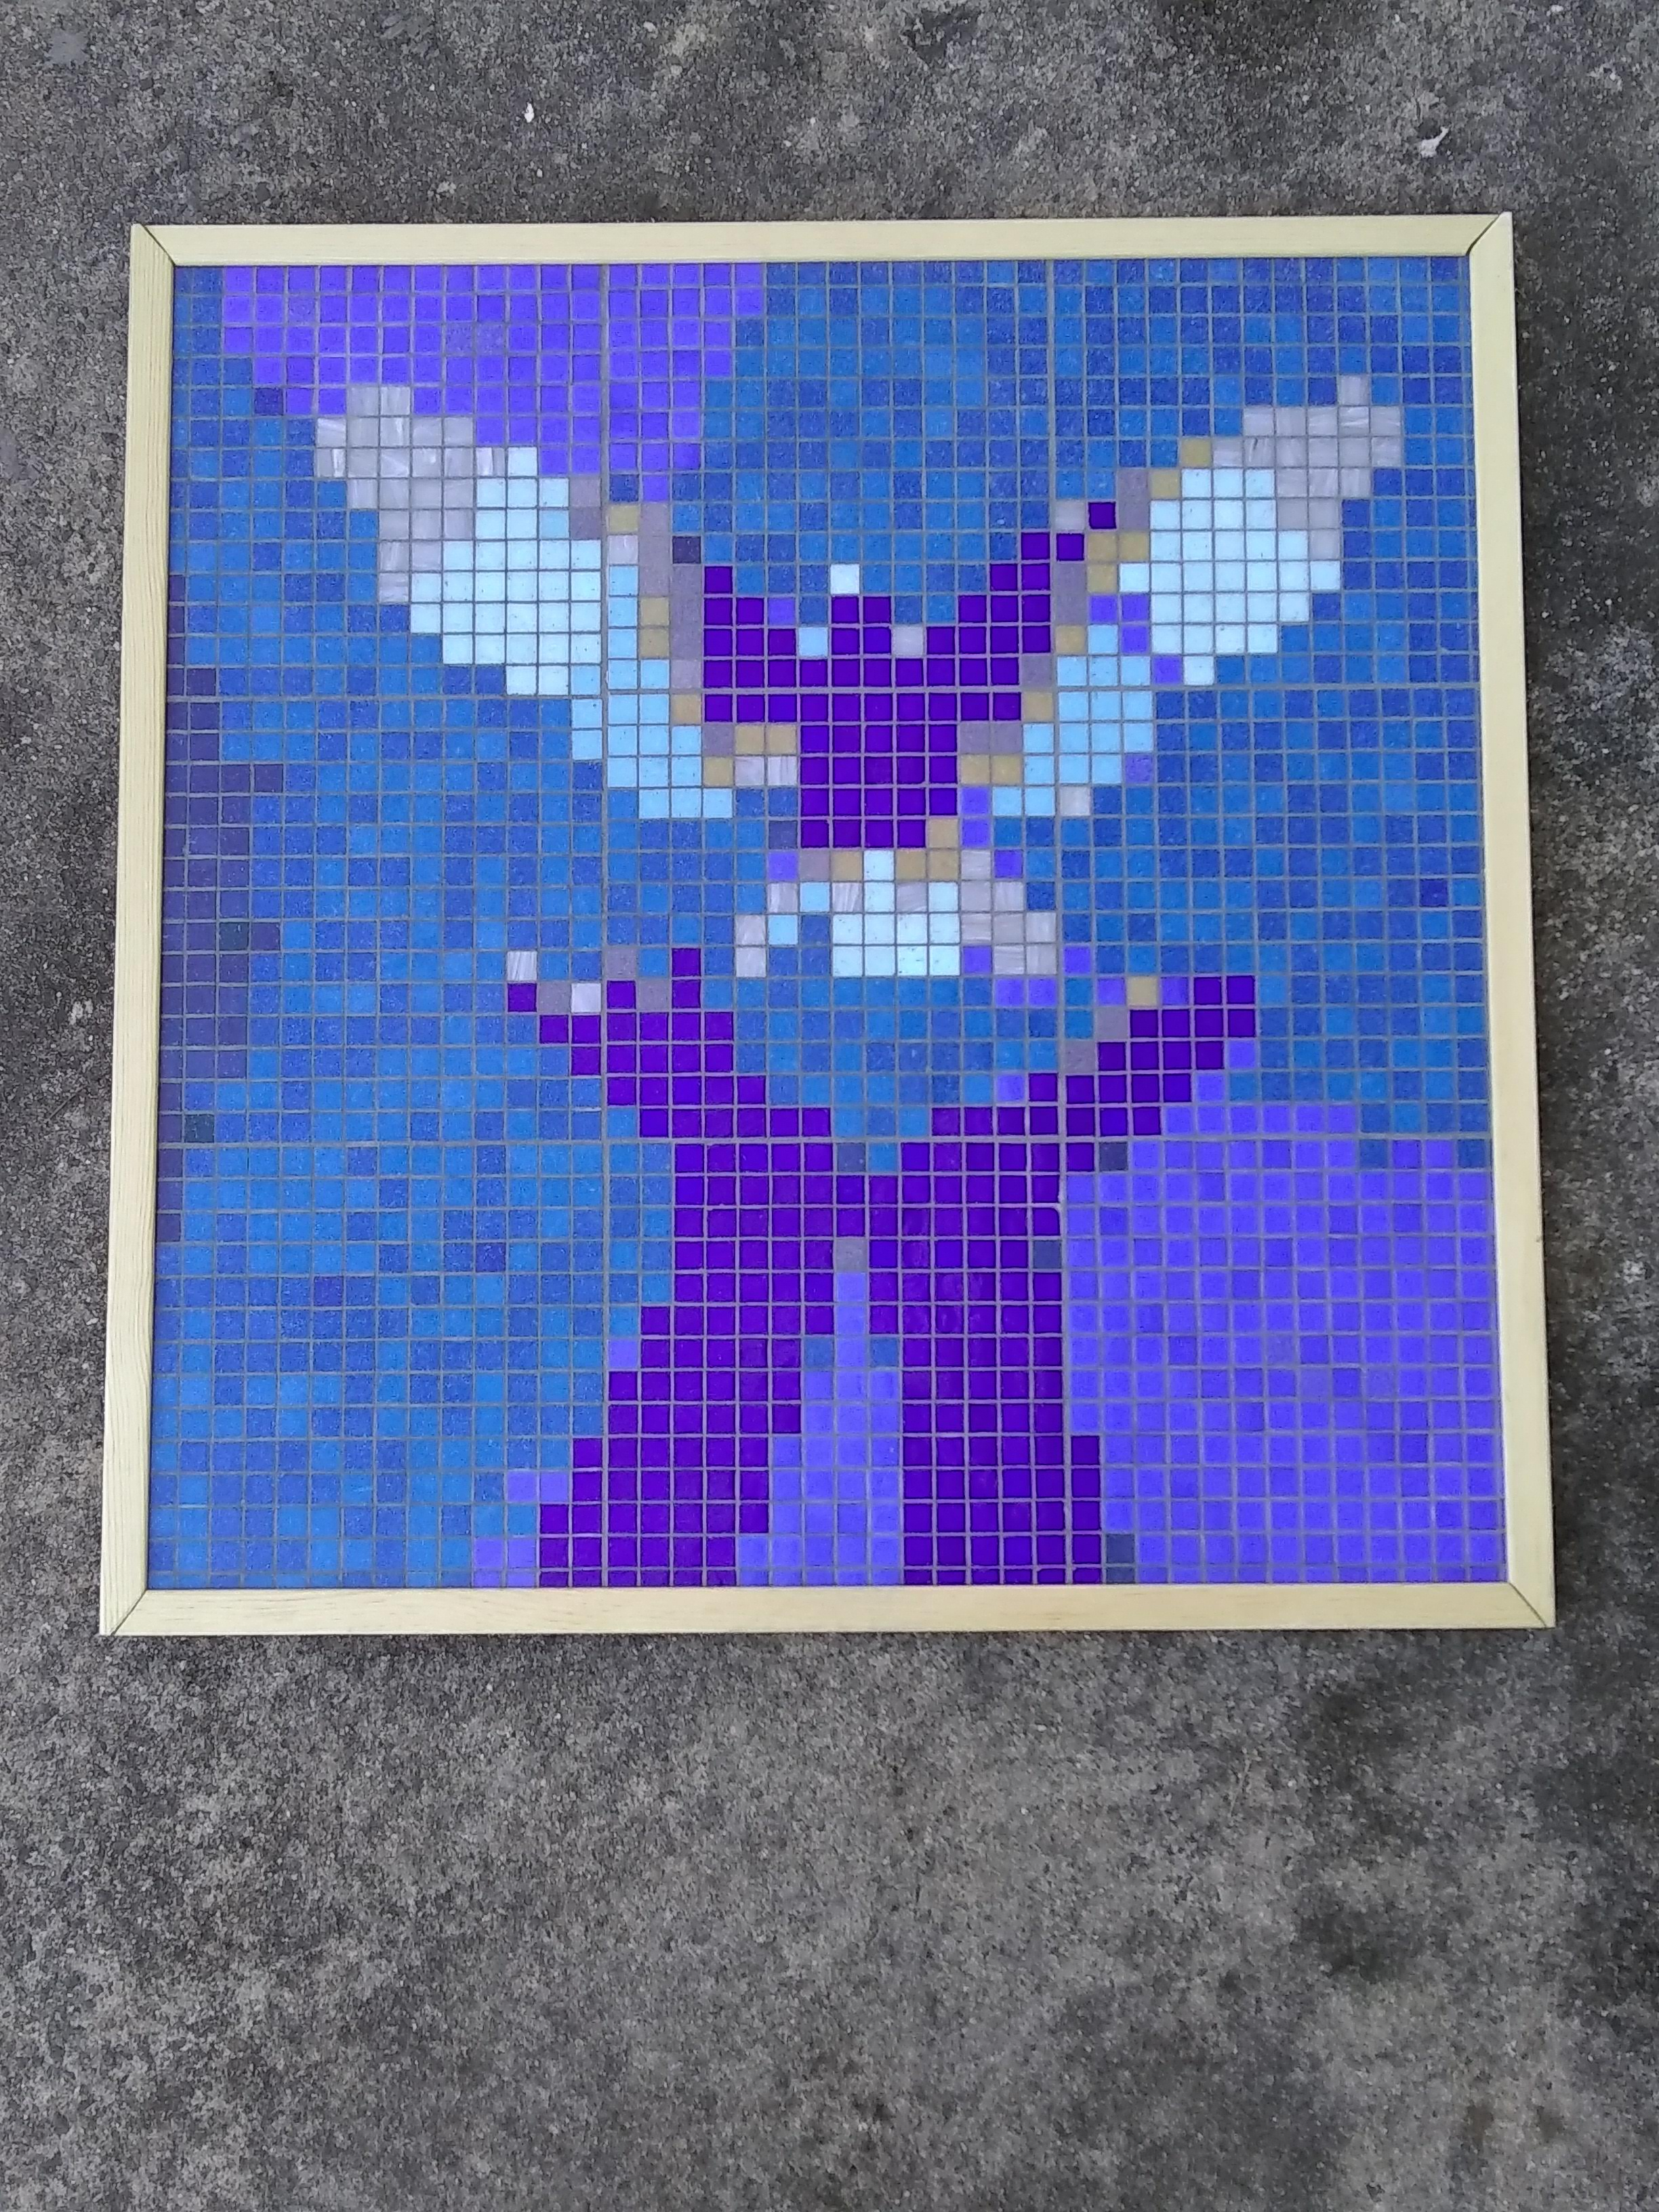 Rogers Herr Middle School, Durham NC Art Club, pixel art mosaic tile with Jeannette Brossart, CAPS